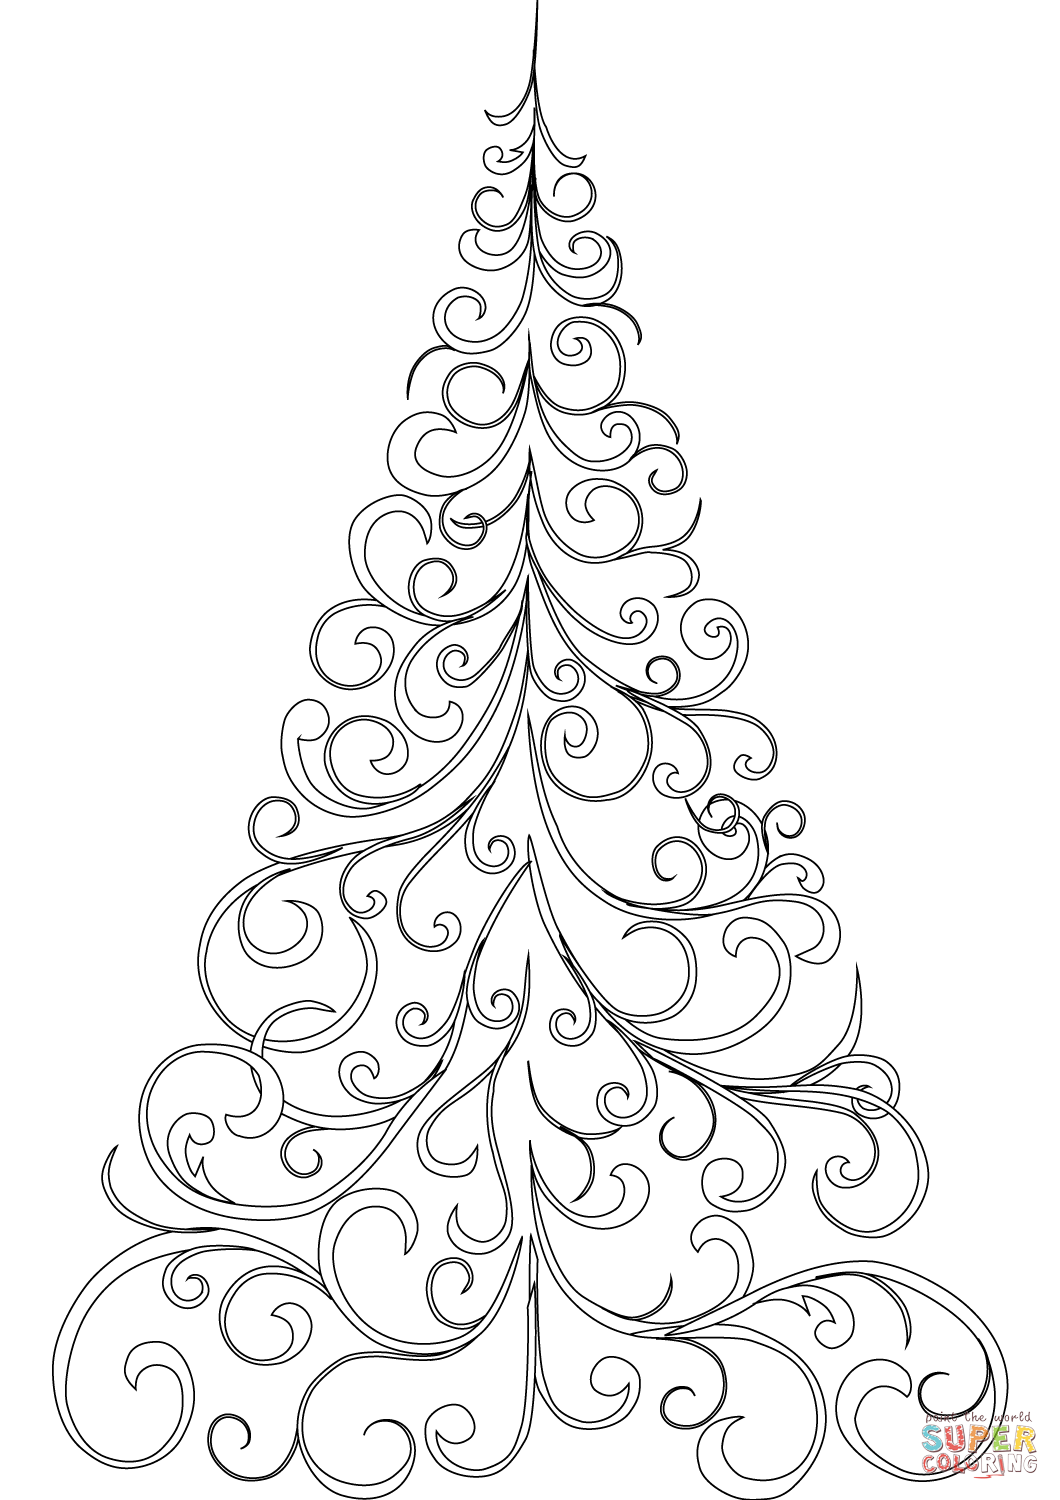 Swirly Christmas Tree Coloring Page